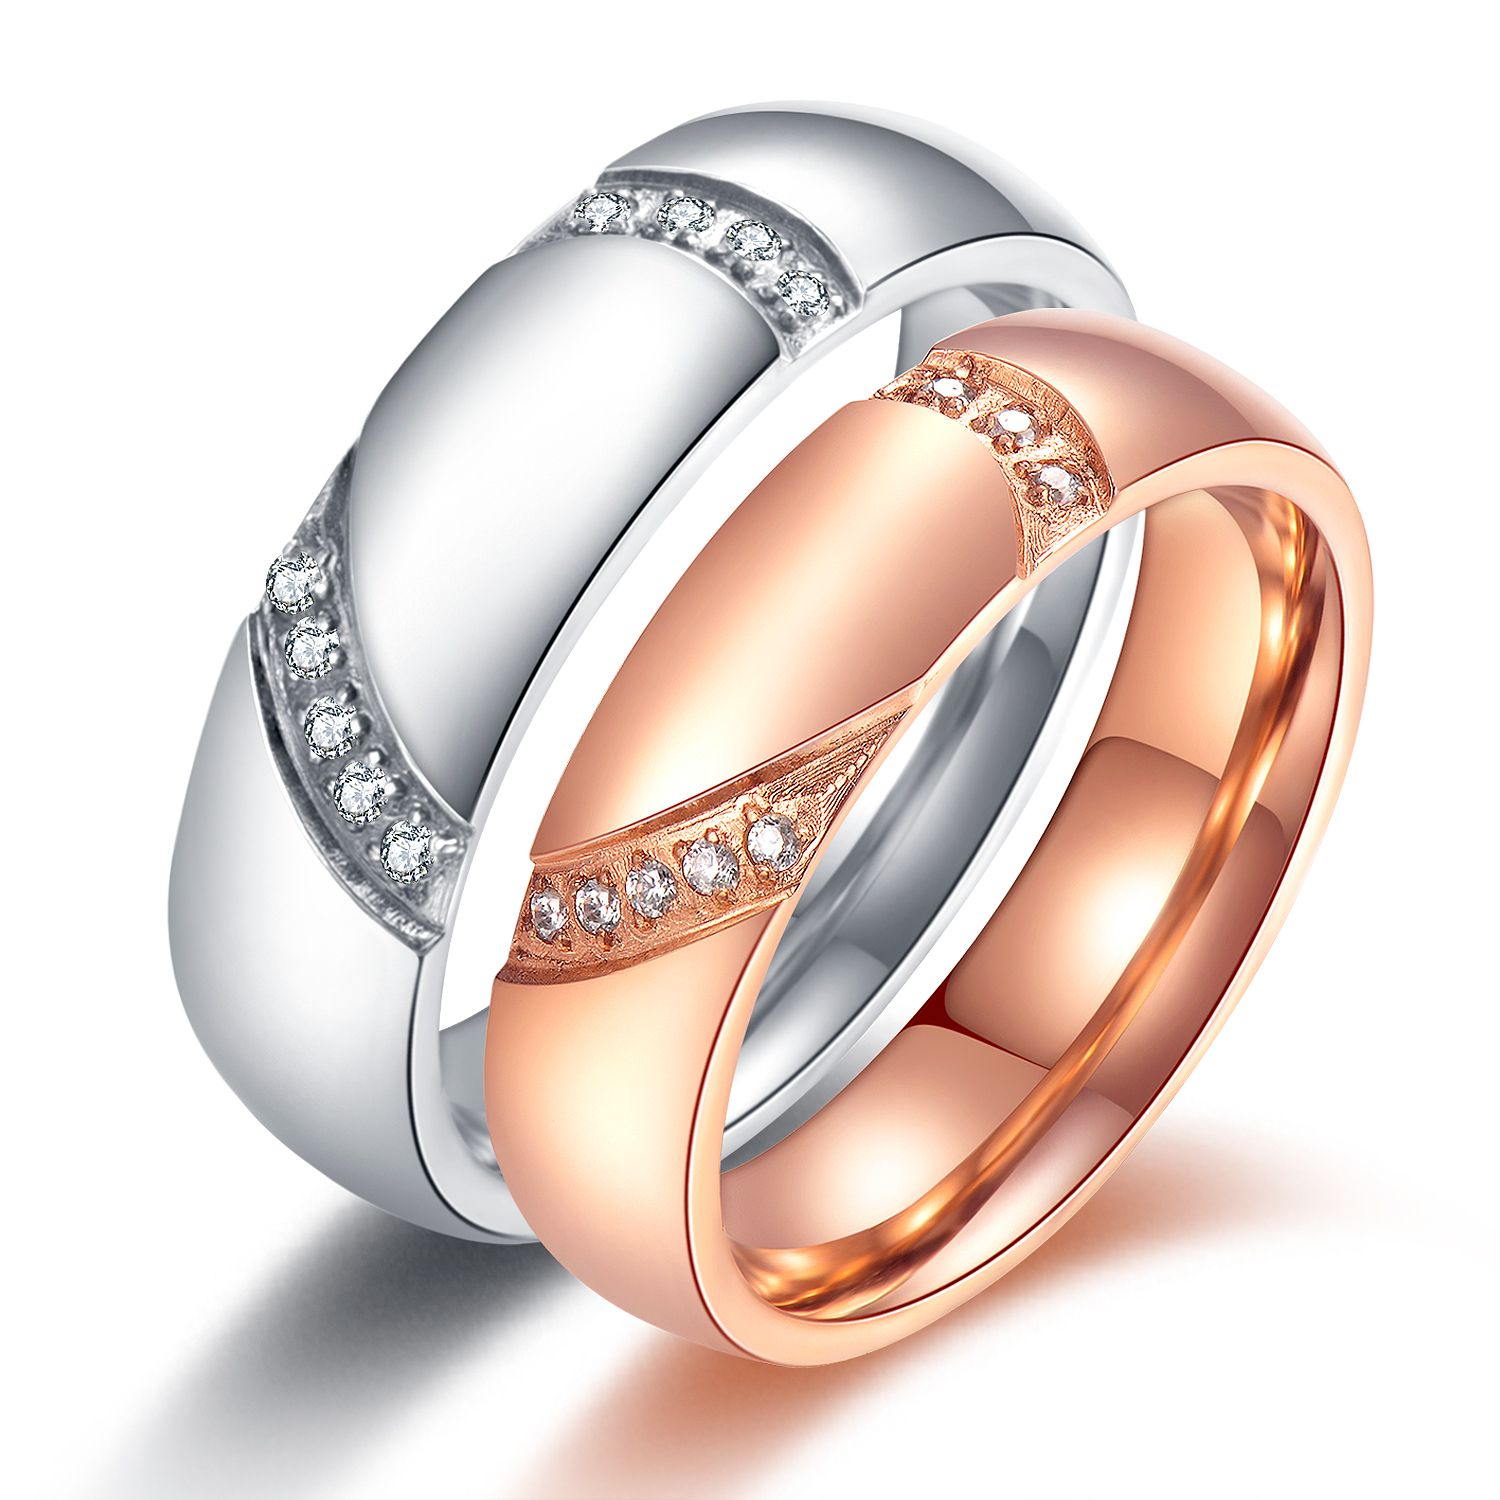 product shaped occasion rings titanium plain jewellery band webstore gold platinum category silver l wedding white number